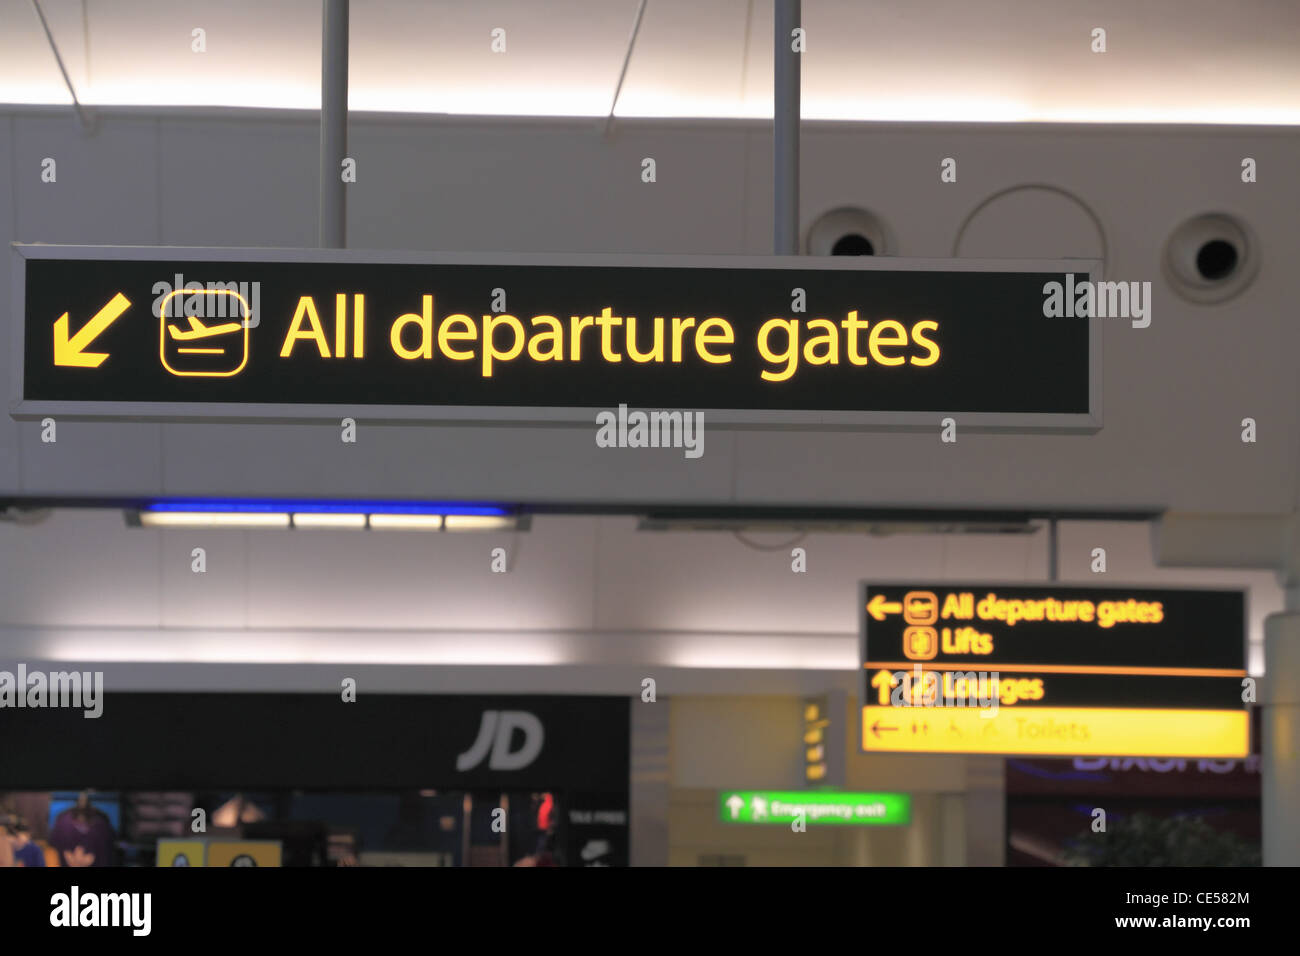 Flight departure gates public information sign in the South terminal of London Gatwick Airport, West Sussex, England. - Stock Image